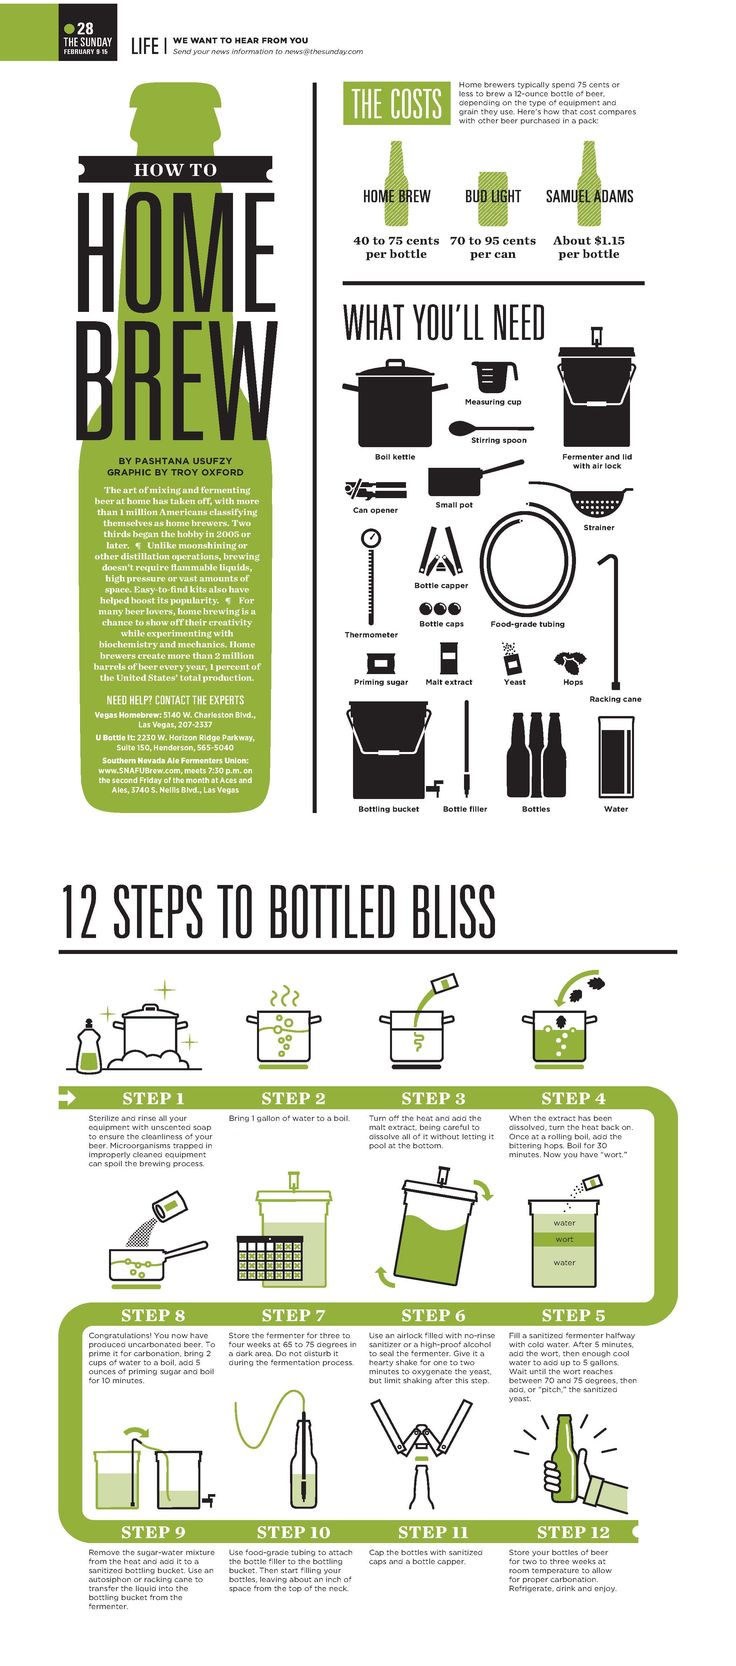 I prefer full boils, but if you dont have the equipment or space this is fine... How to home brew your own #beer. More